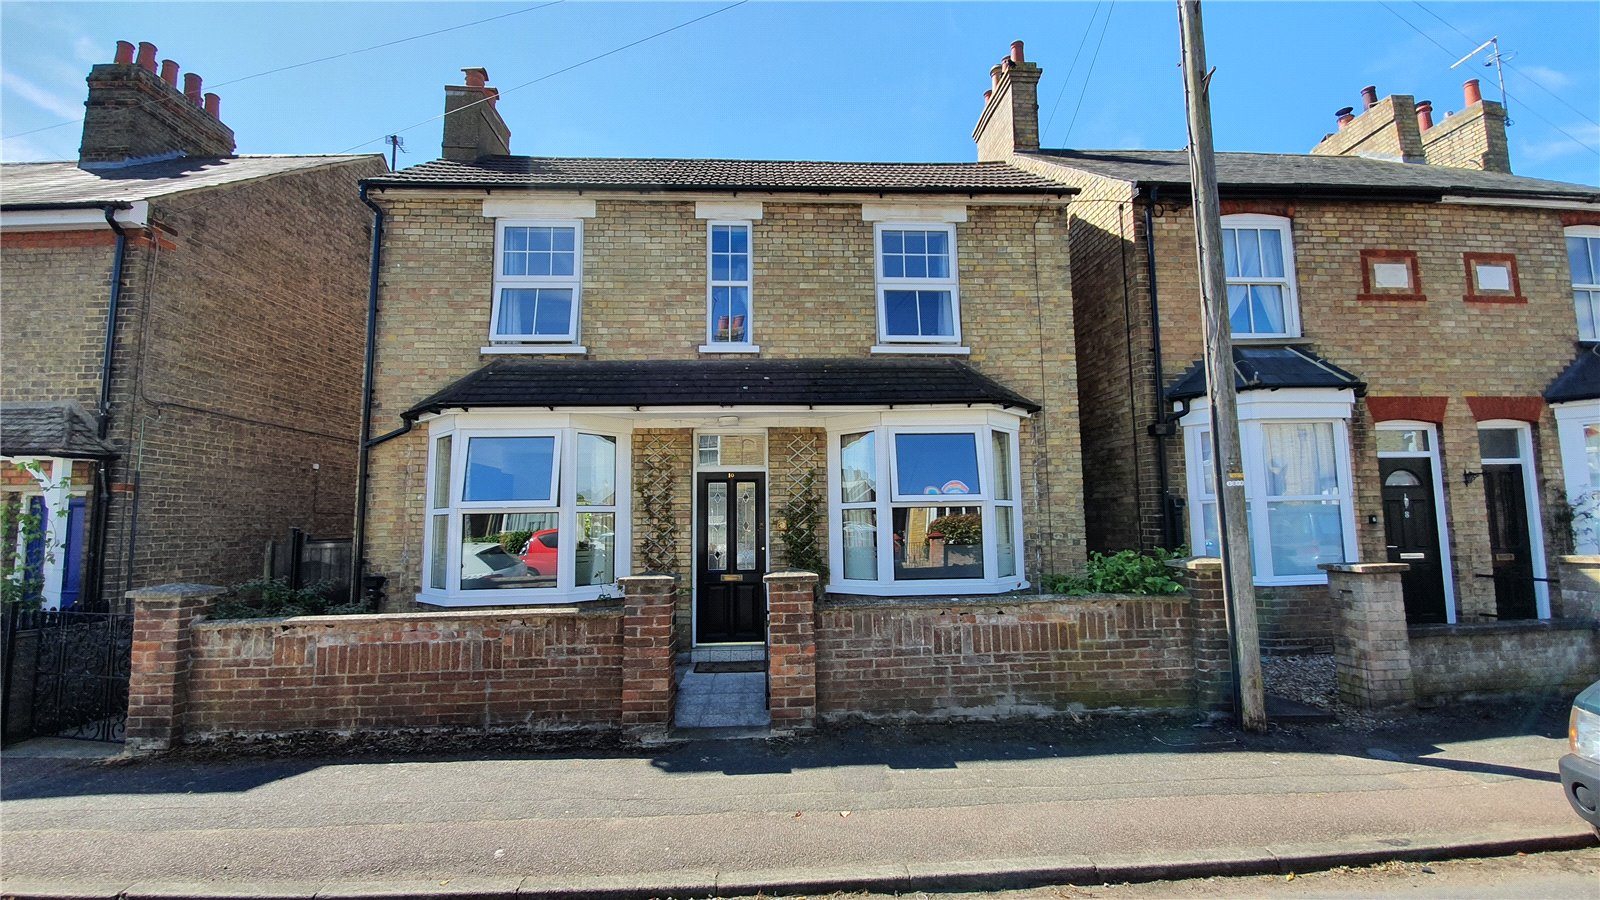 3 bed house for sale in Shaftesbury Avenue, St. Neots - Property Image 1